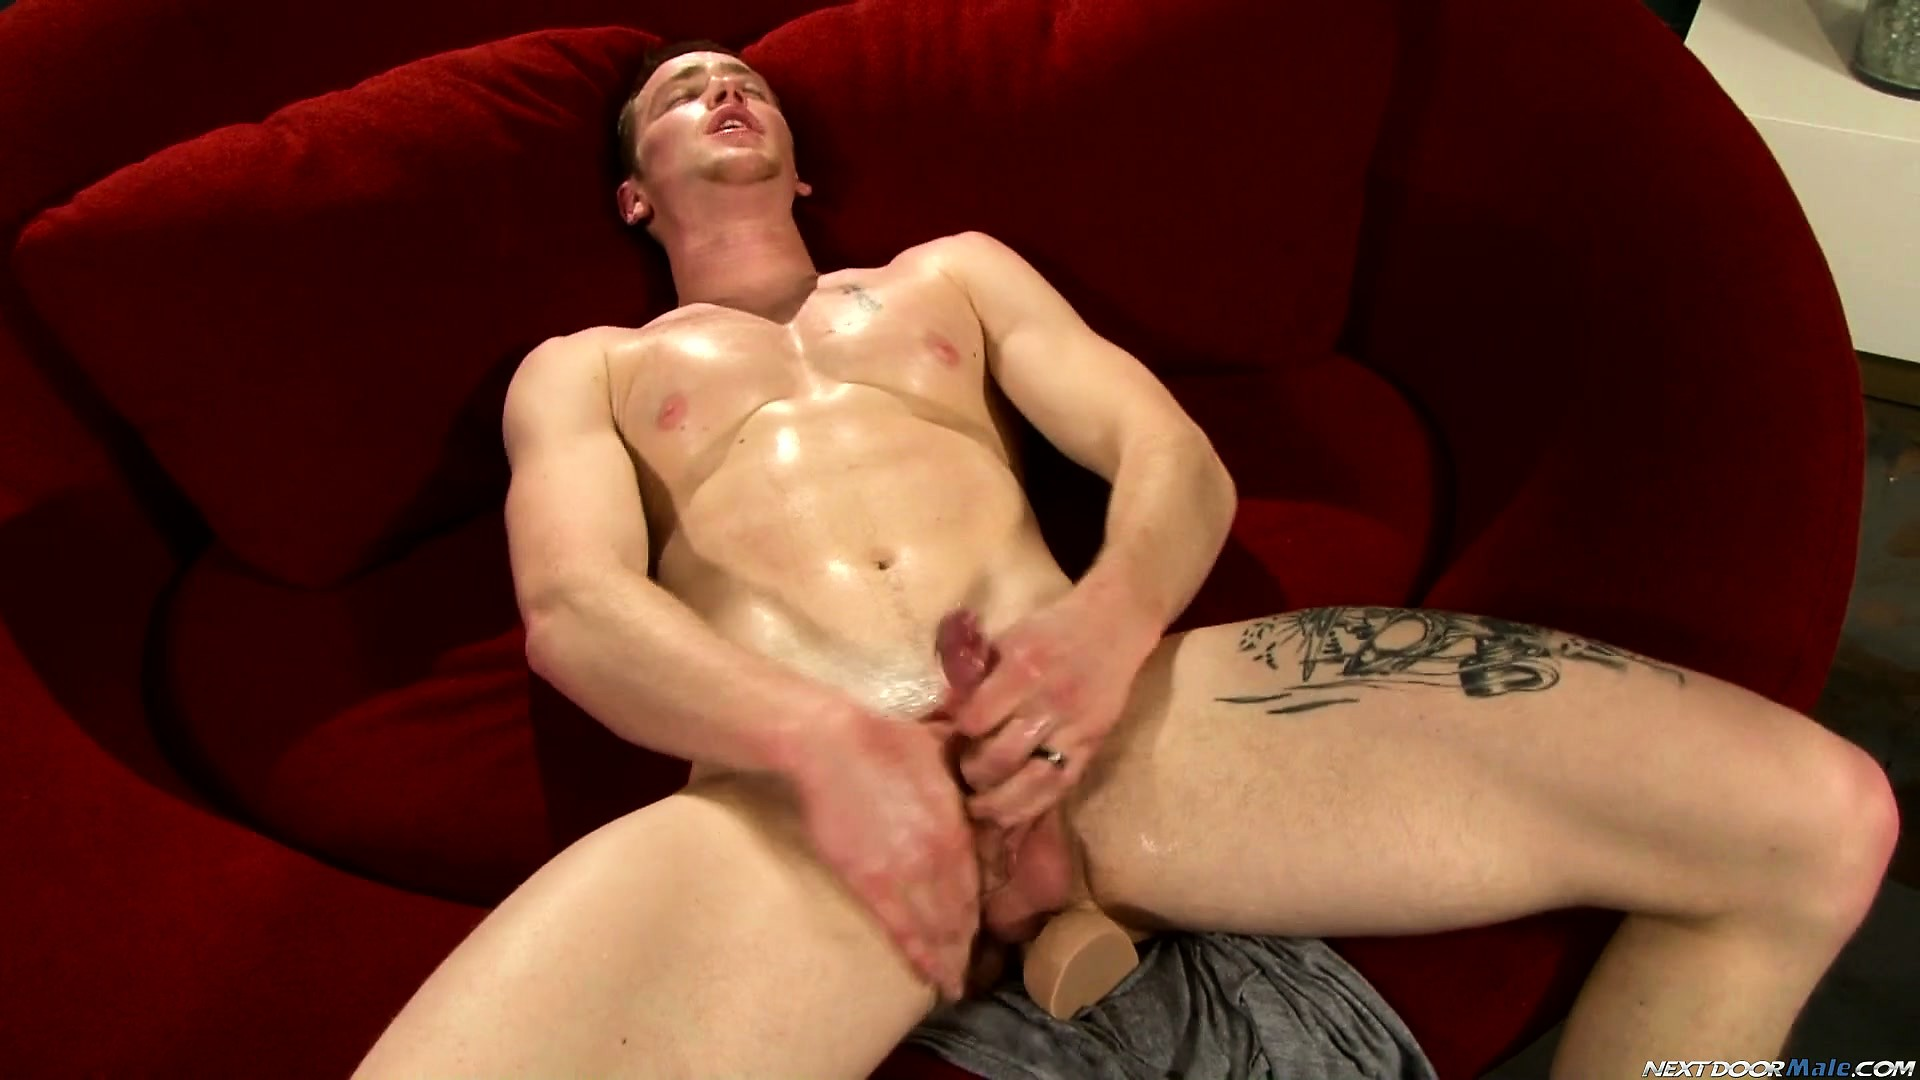 Porno Video of Horny Dude Rick Mccoy Shoves A Dildo Up His Ass And Pulls His Pecker In A Solo